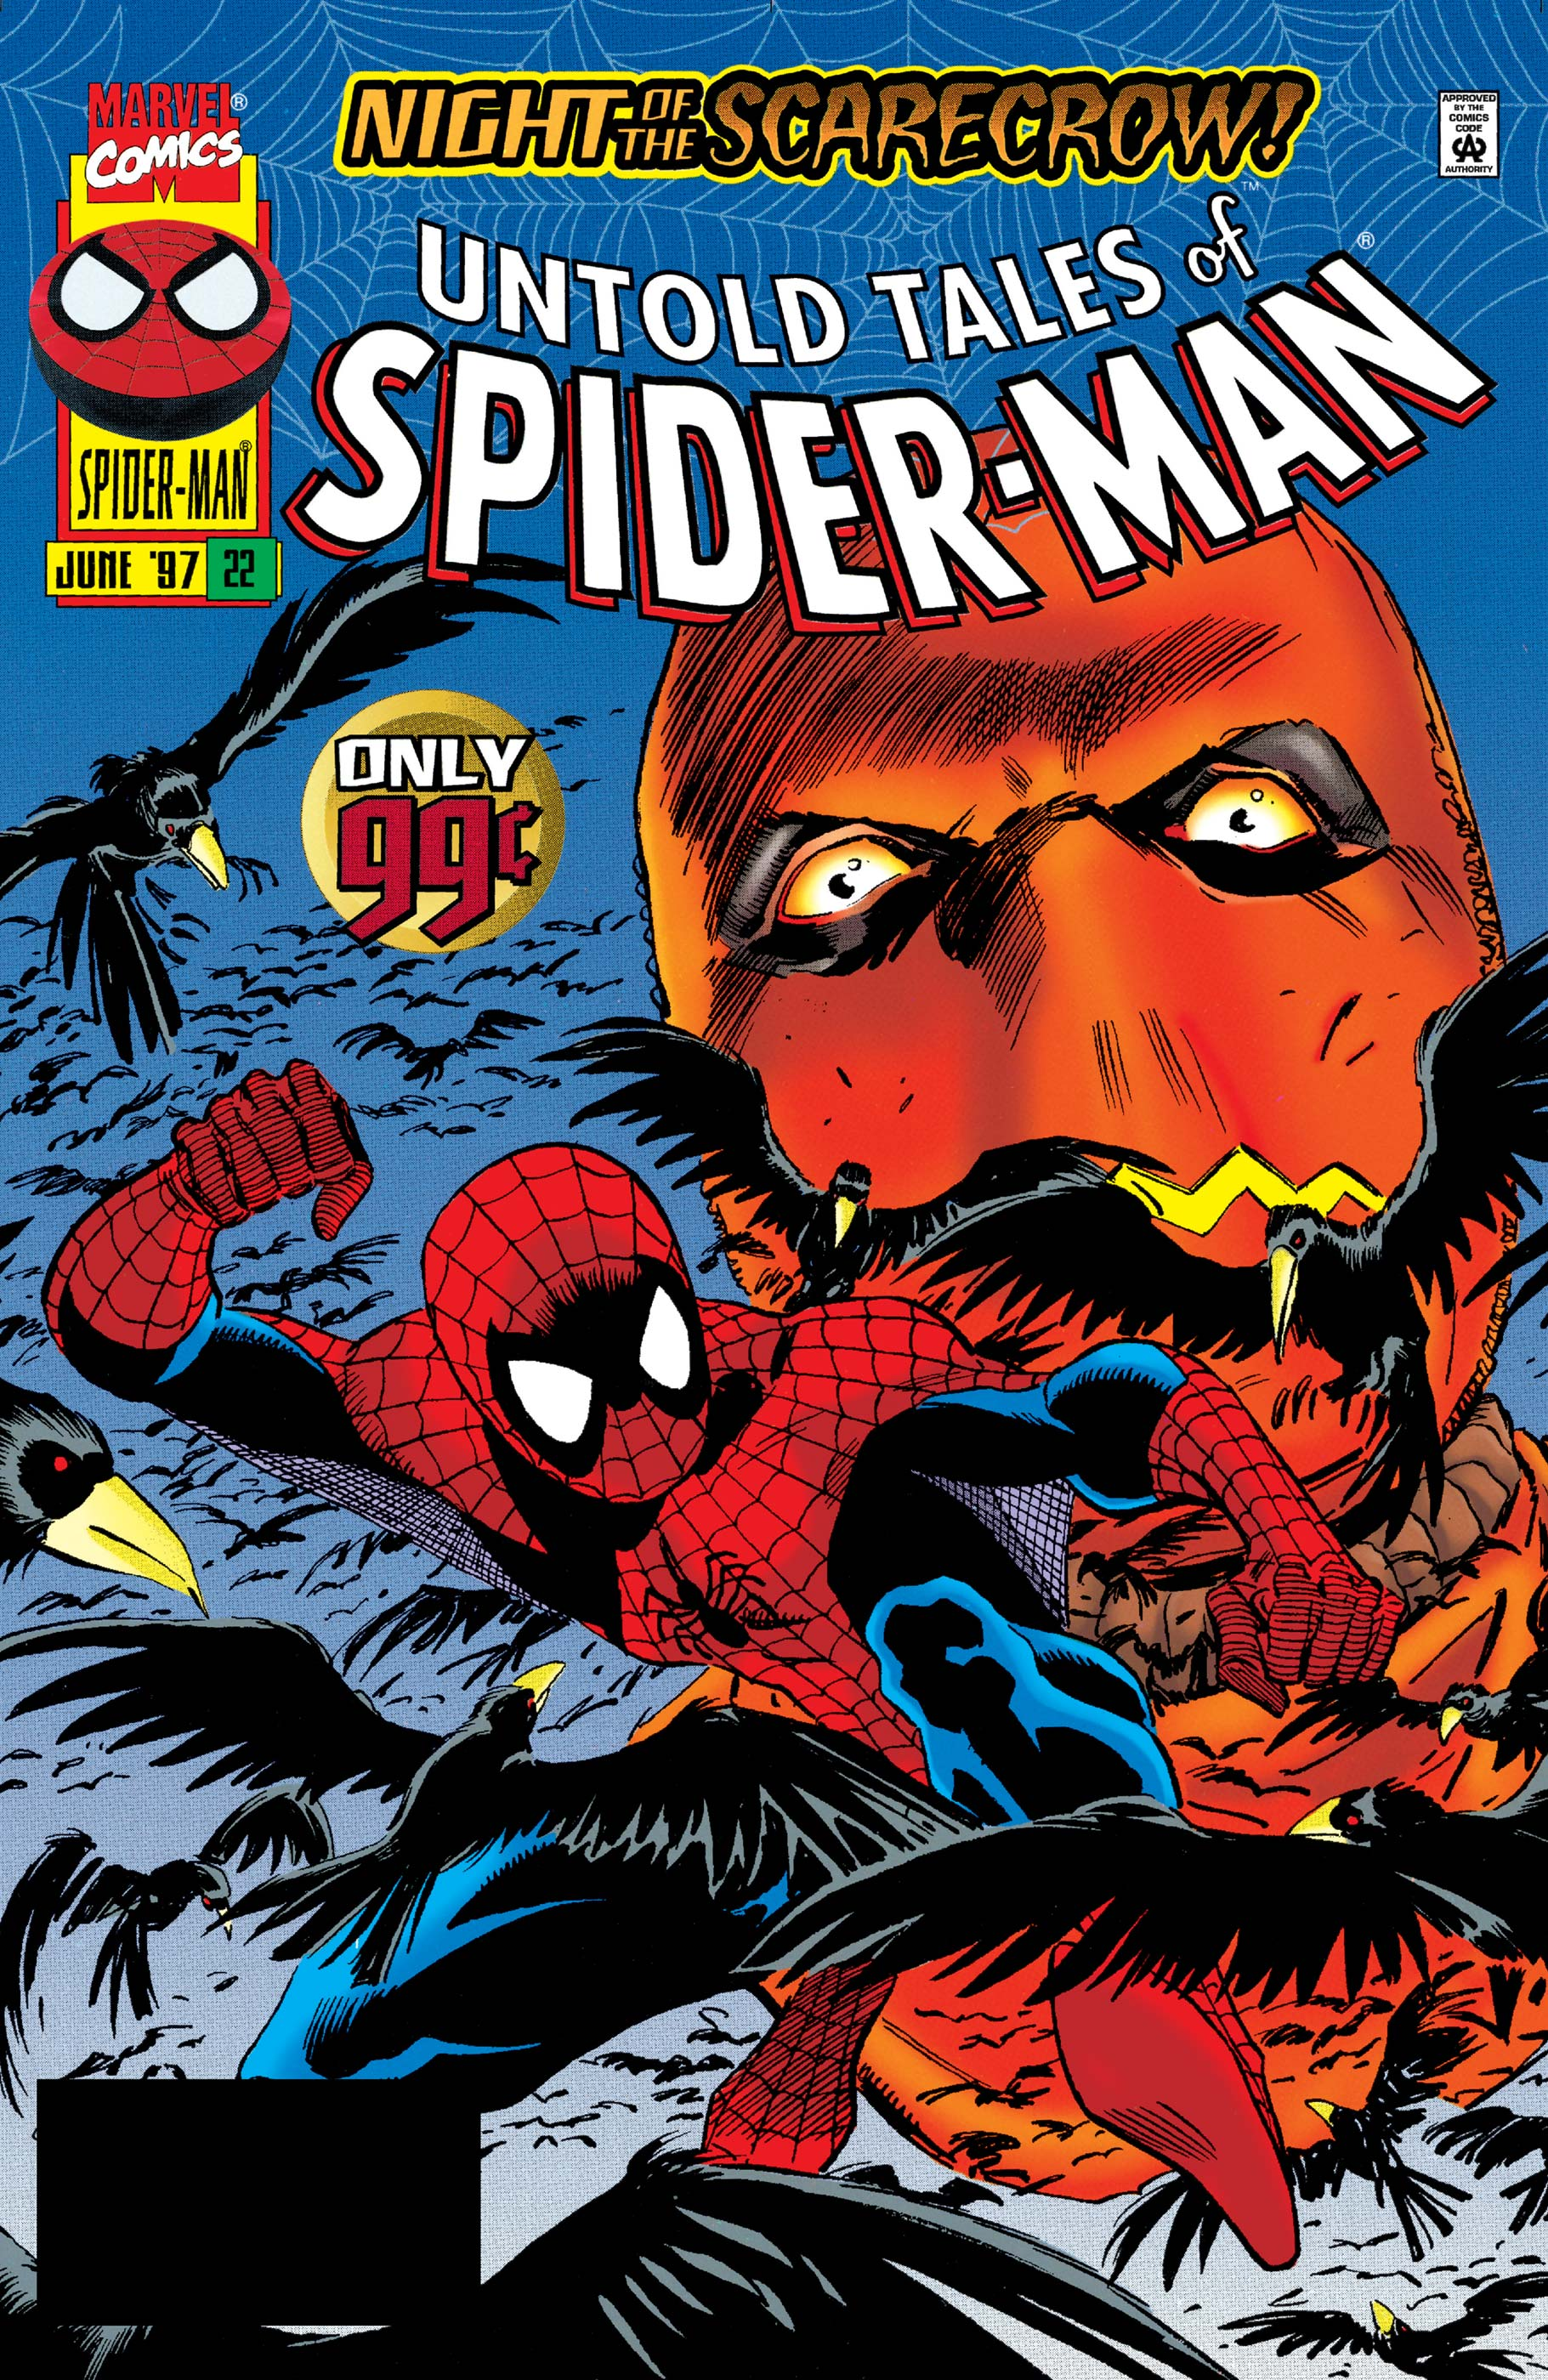 Untold Tales of Spider-Man (1995) #22